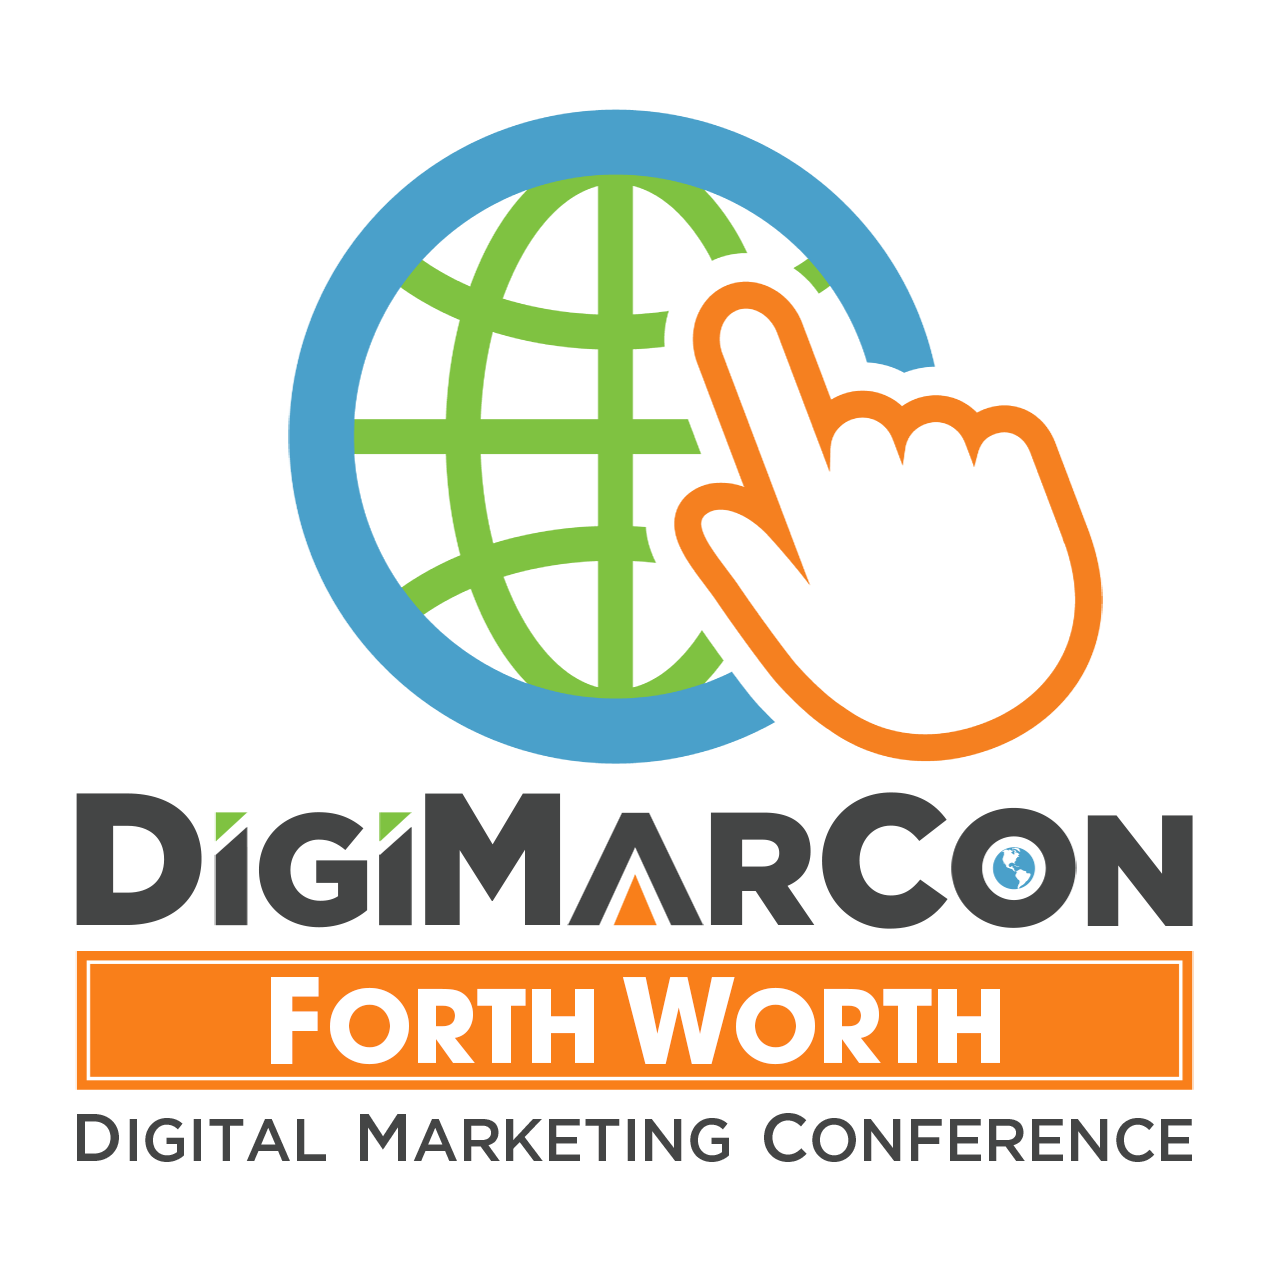 Fort Worth Digital Marketing, Media & Advertising Conference